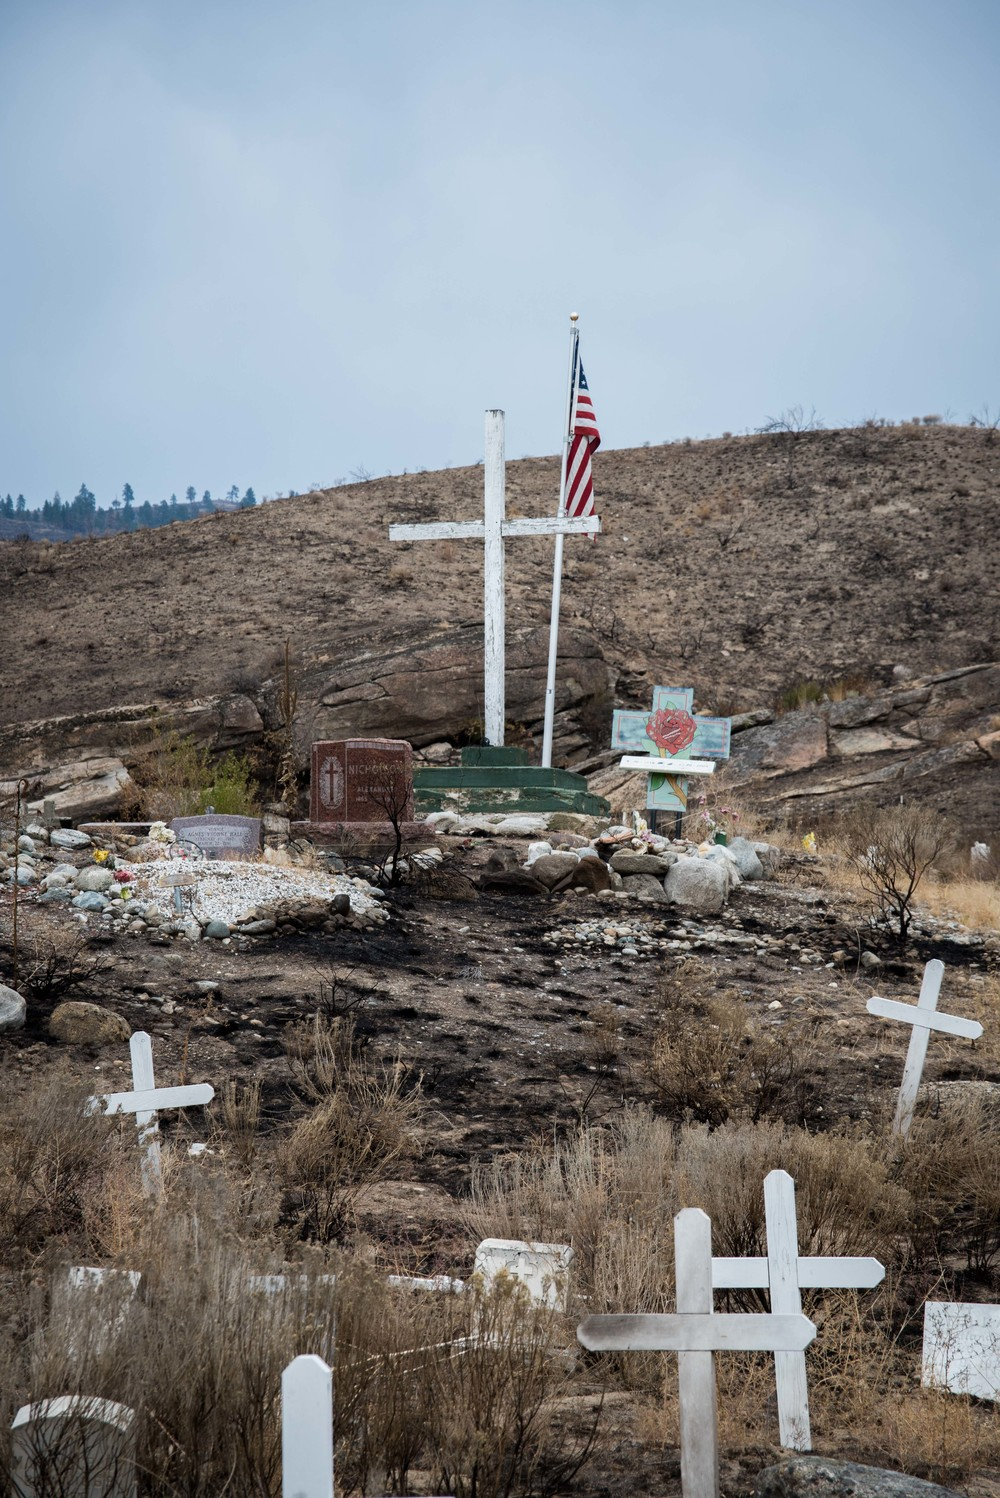 Wildfire passed through cemetery at St. Mary's Mission at the Colville Indian Reservation near the Okanogan Complex and North Star fires in North Central Washington.